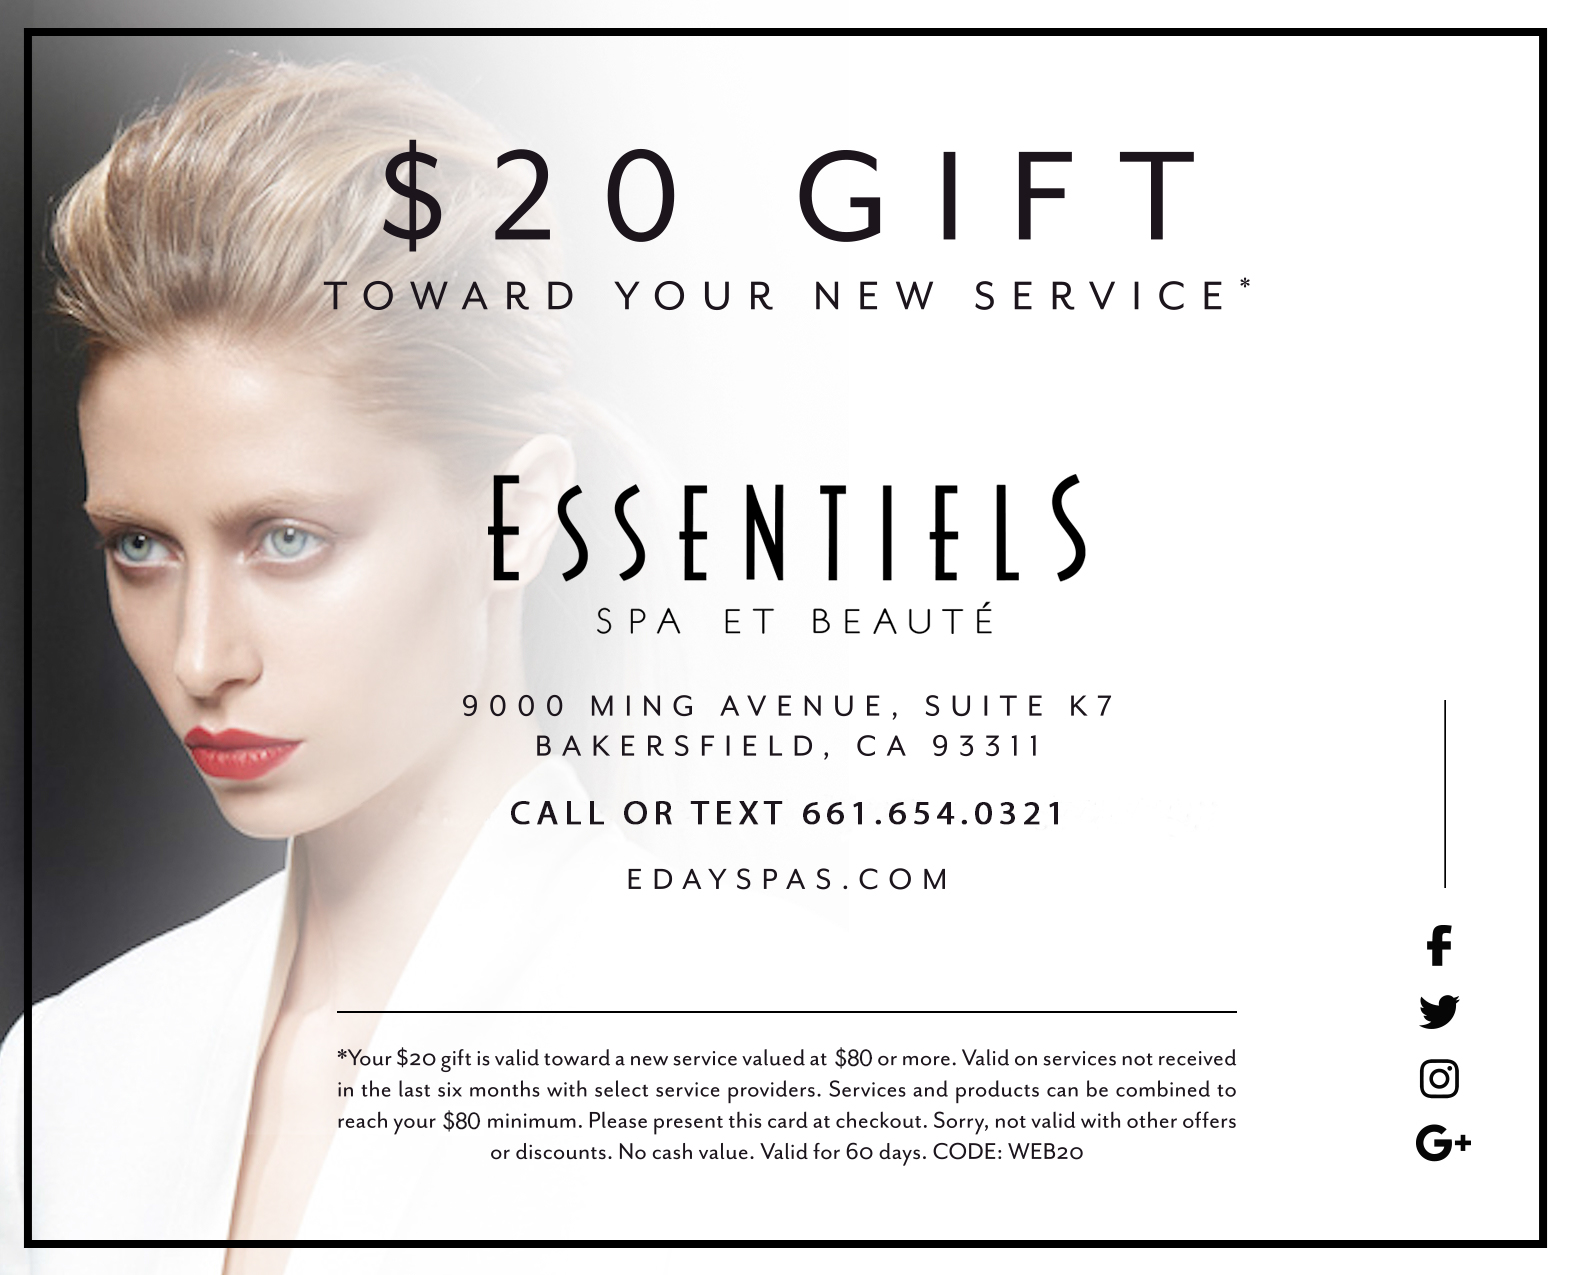 $20 Gift toward your new service.